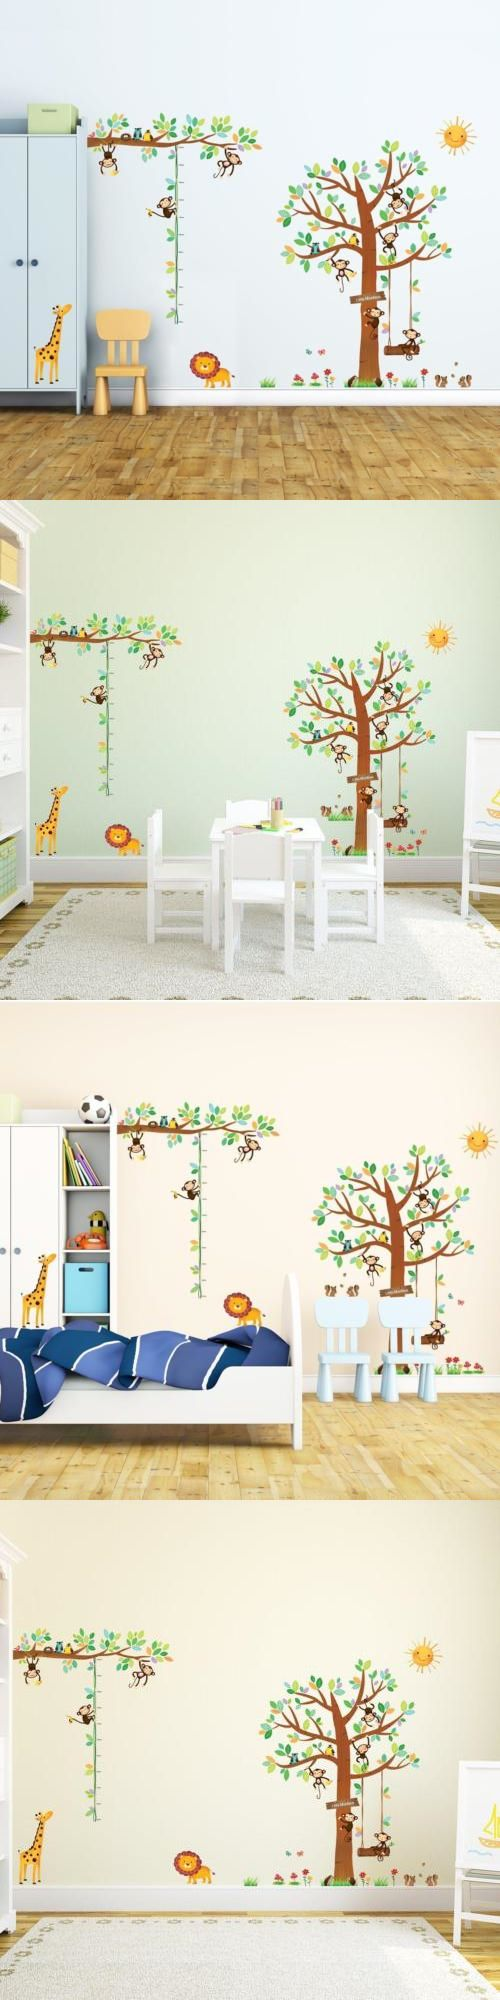 2439 best festival wall stickers images on pinterest wall decals stickers and vinyl art 159889 little monkeys tree height chart nursery kids wall decals